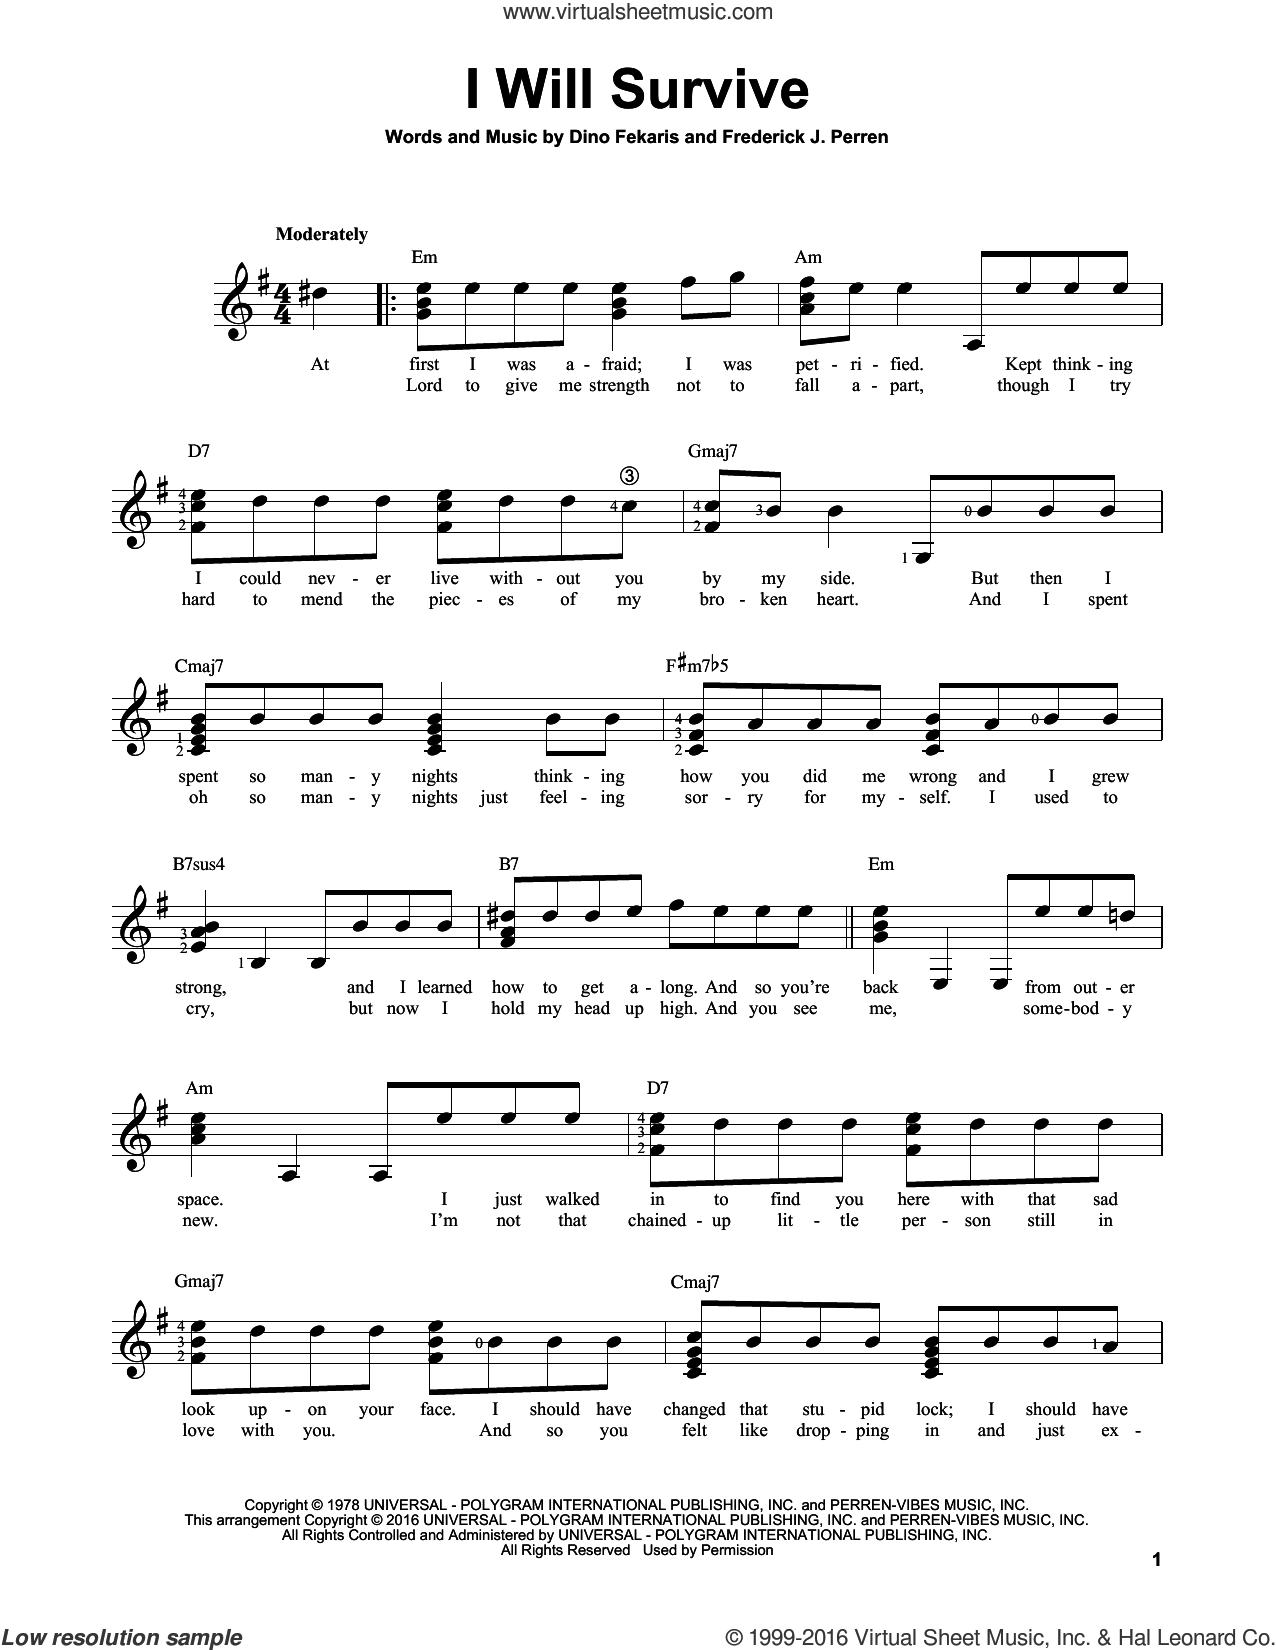 I Will Survive sheet music for guitar solo (chords) by Gloria Gaynor, Chantay Savage, Dino Fekaris and Frederick Perren, easy guitar (chords). Score Image Preview.